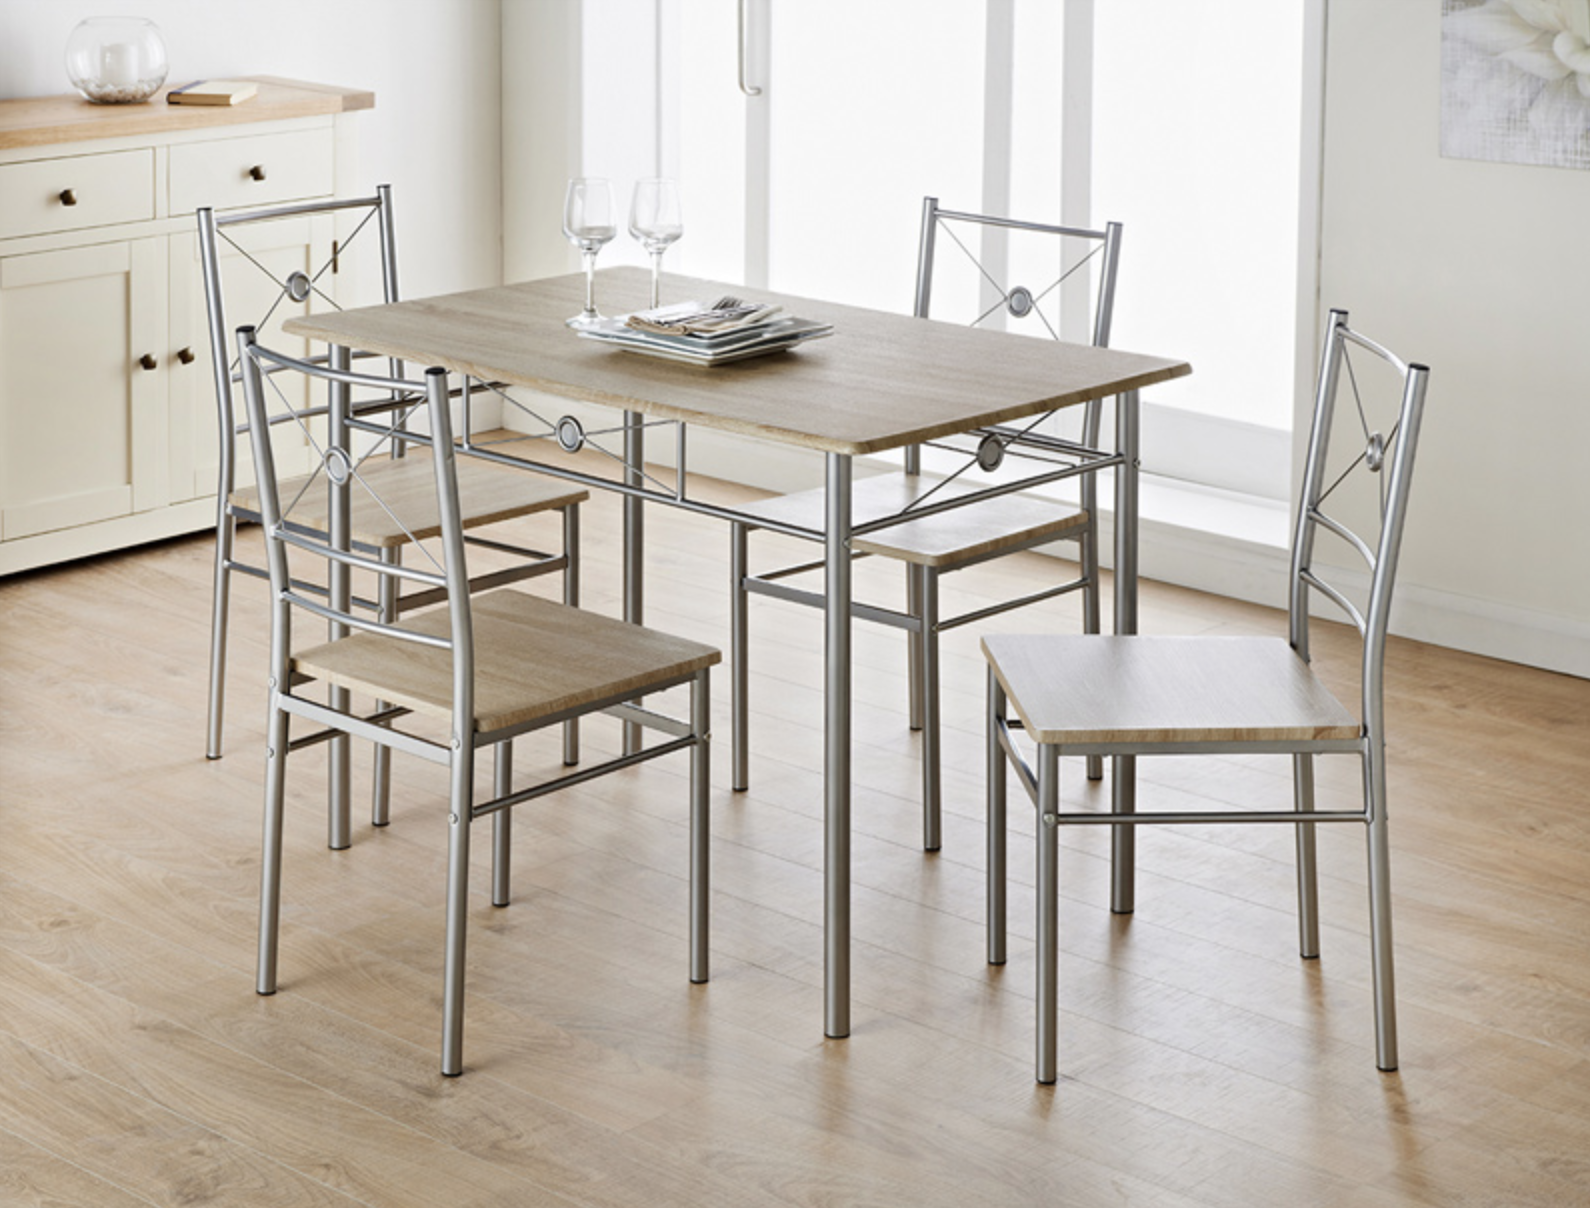 b&m stores furniture dining table